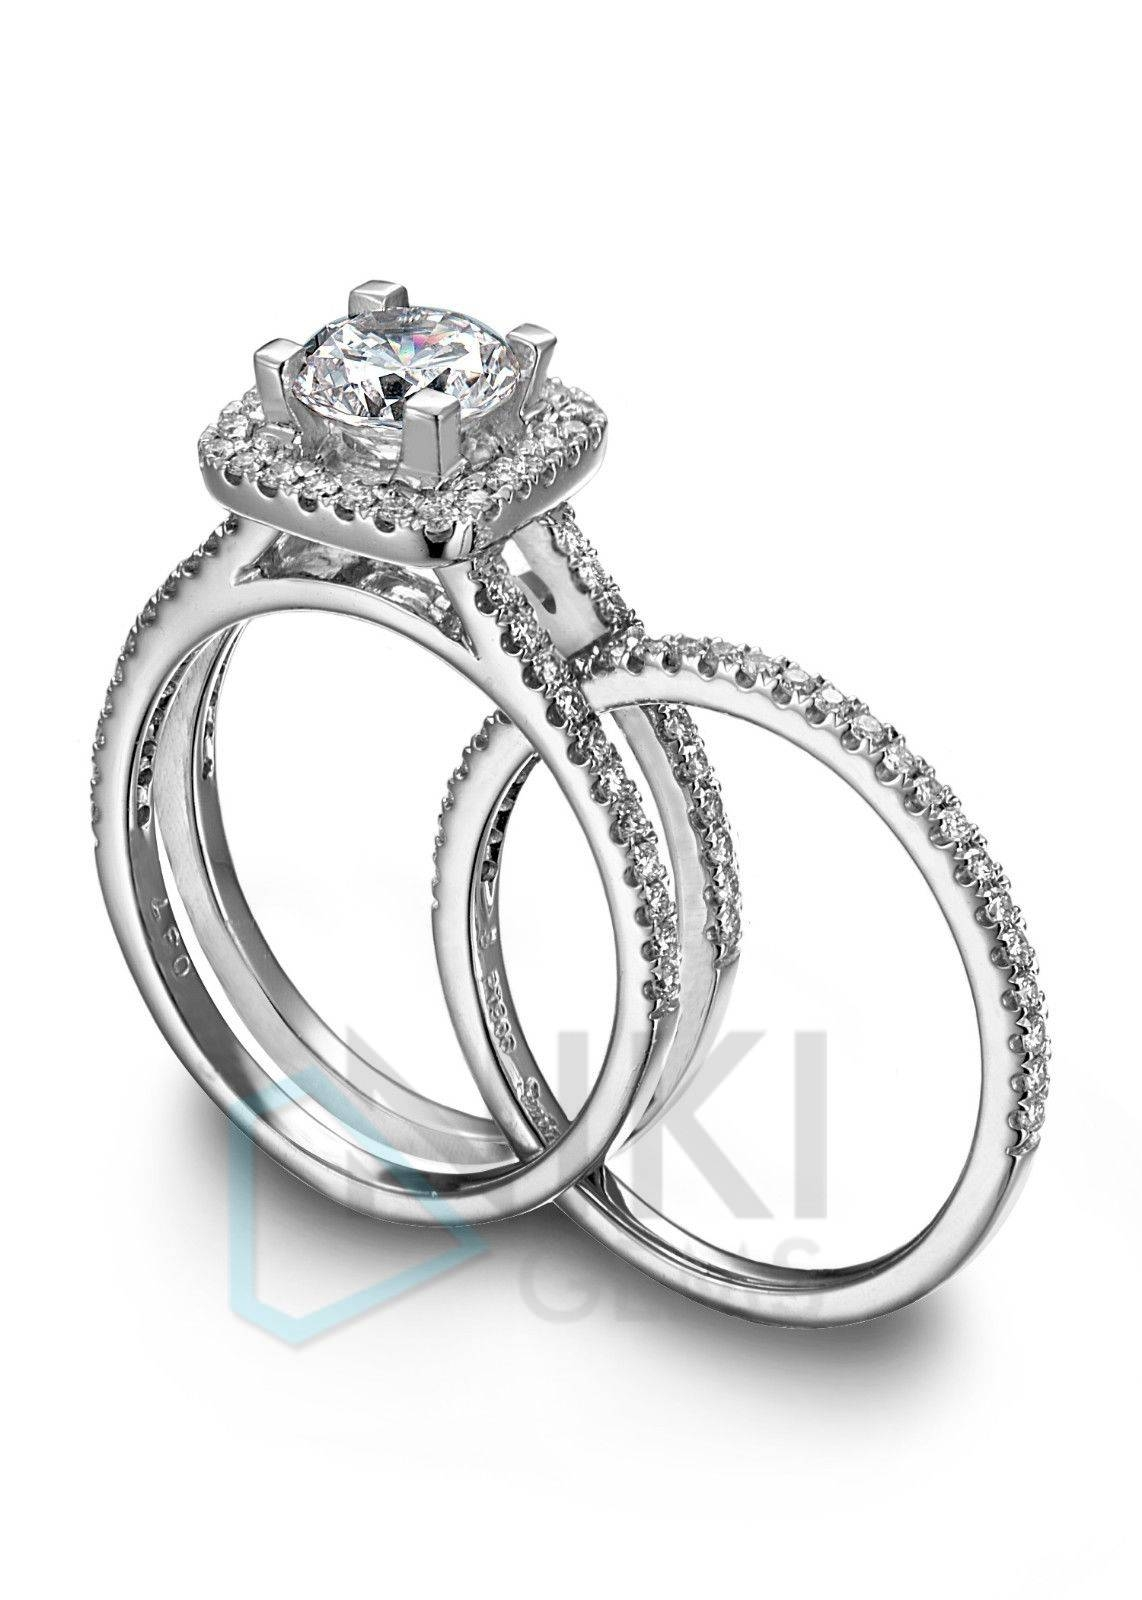 Wedding Band Fits In Engagement Ring – Engagement Ring Usa For Wedding Band Fits Inside Engagement Rings (View 6 of 15)